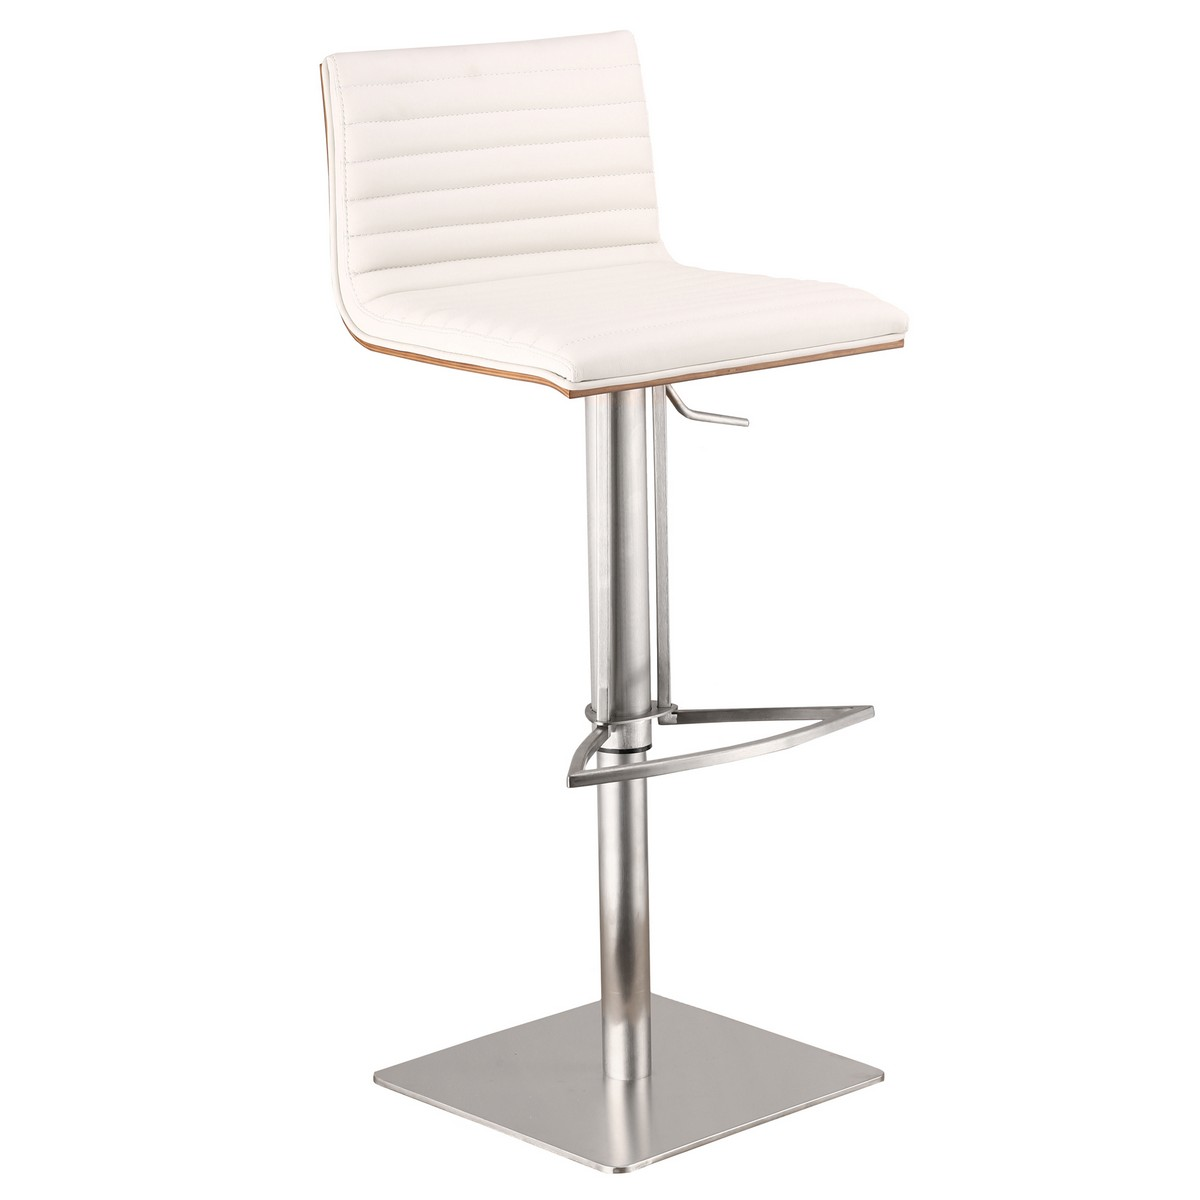 Armen Living Cafe Adjustable Brushed Stainless Steel Barstool in White Leatherette with Walnut Back